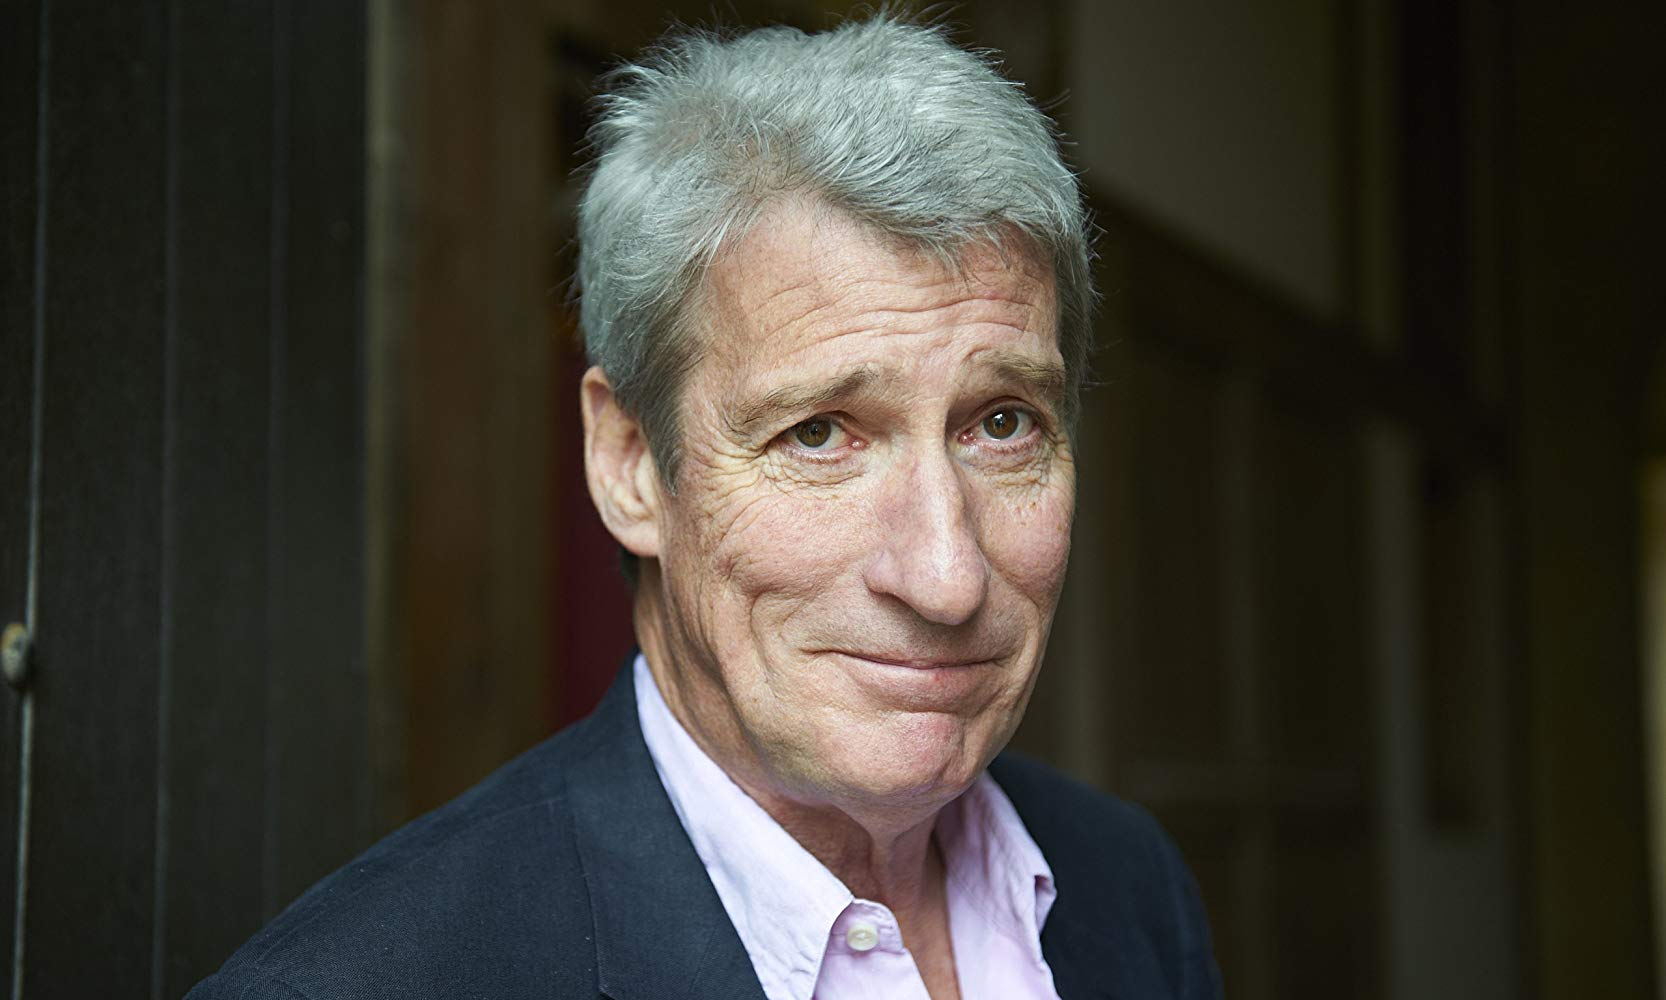 Is Jeremy Paxman Married Secretly? Know More About His Partner and Relationship!